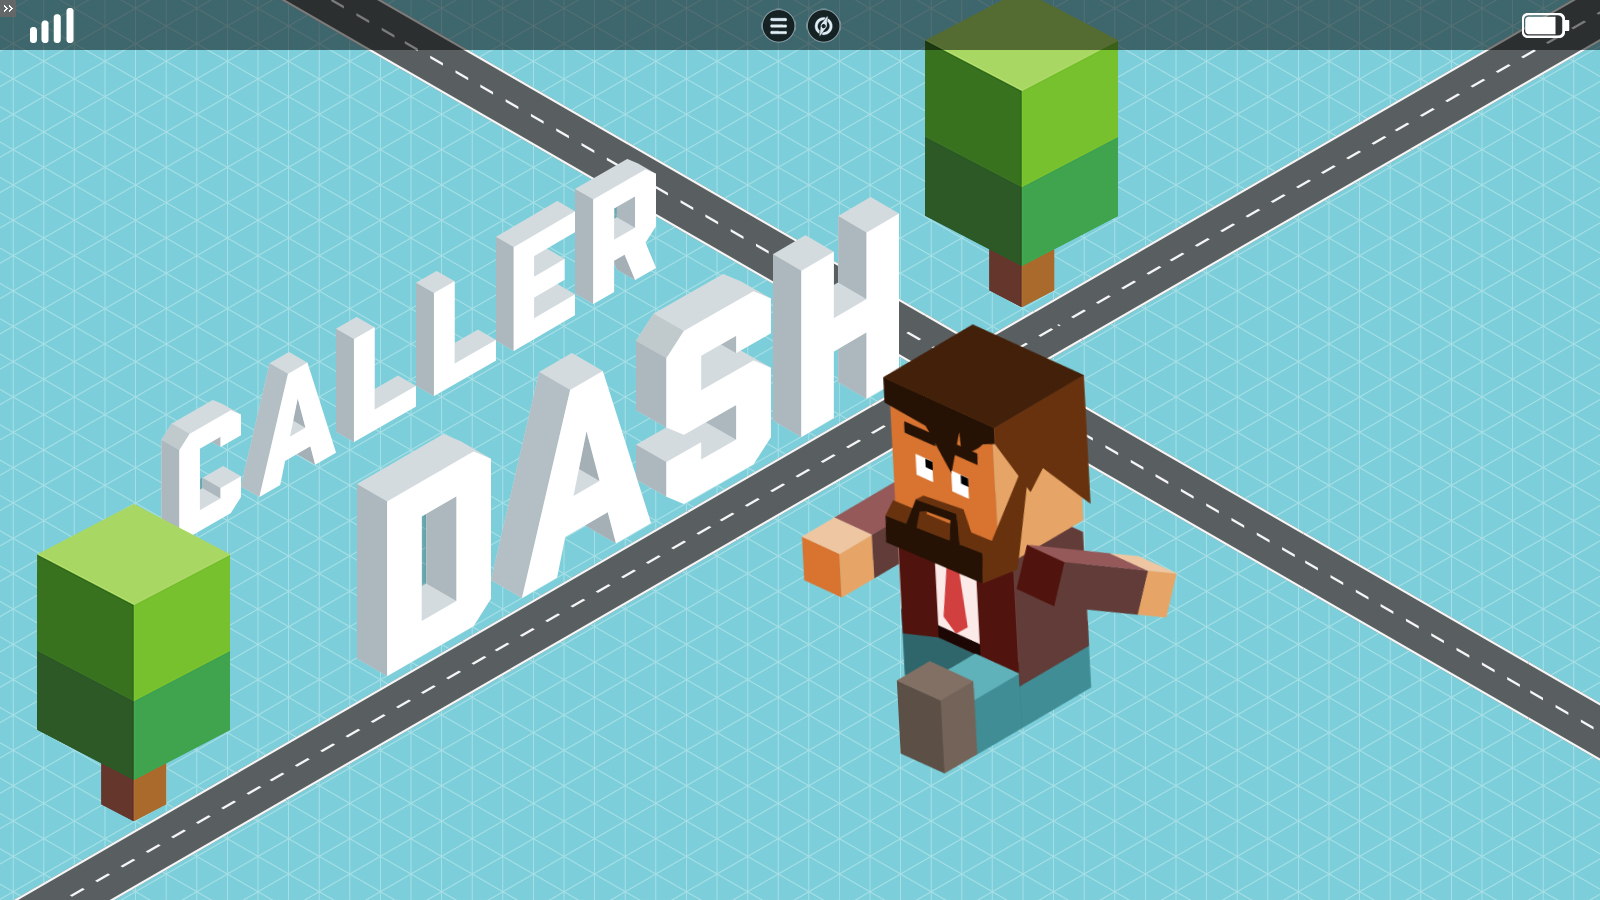 a title slide for a game called Caller Dash